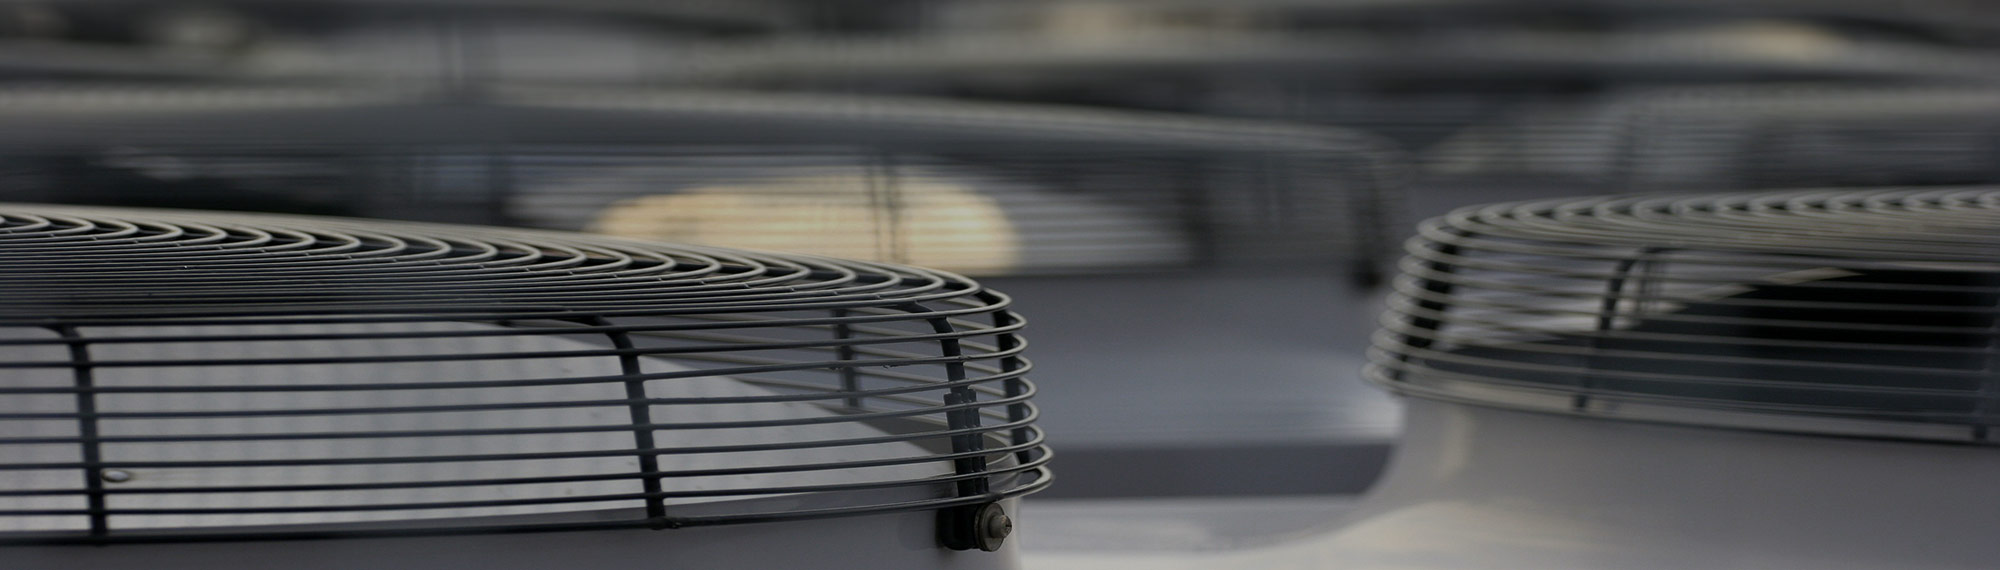 Commercial AC Repair Phoenix | HVAC and Air Conditioning Services By Cascade Mechanical, Inc.